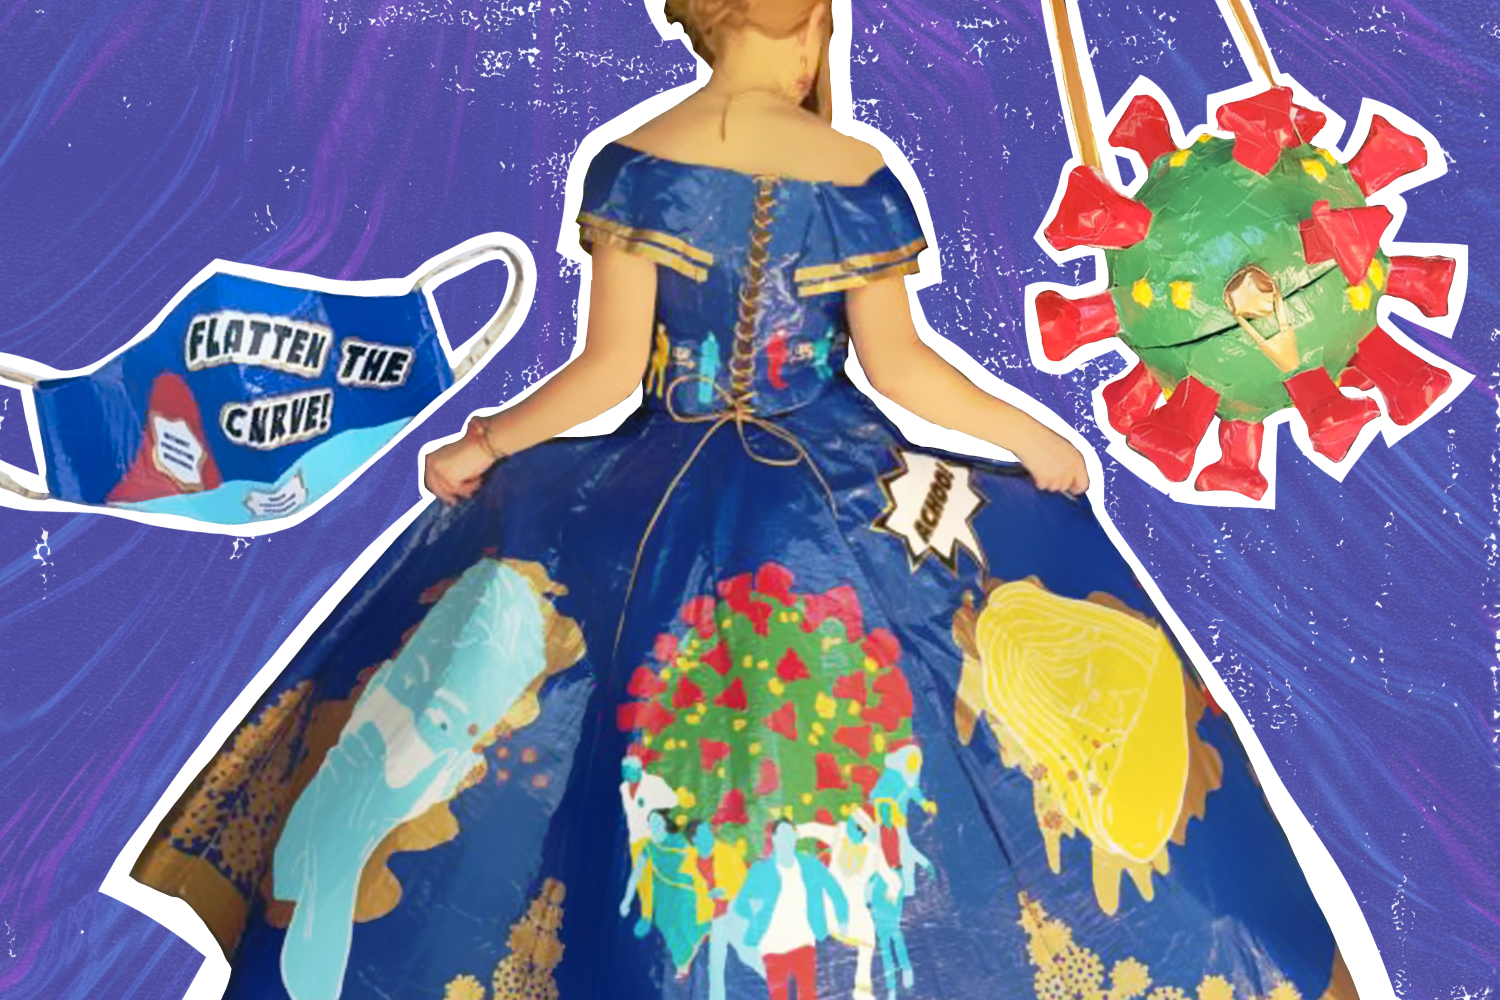 Graphic compilation of COVID-19 dress made of duct tape